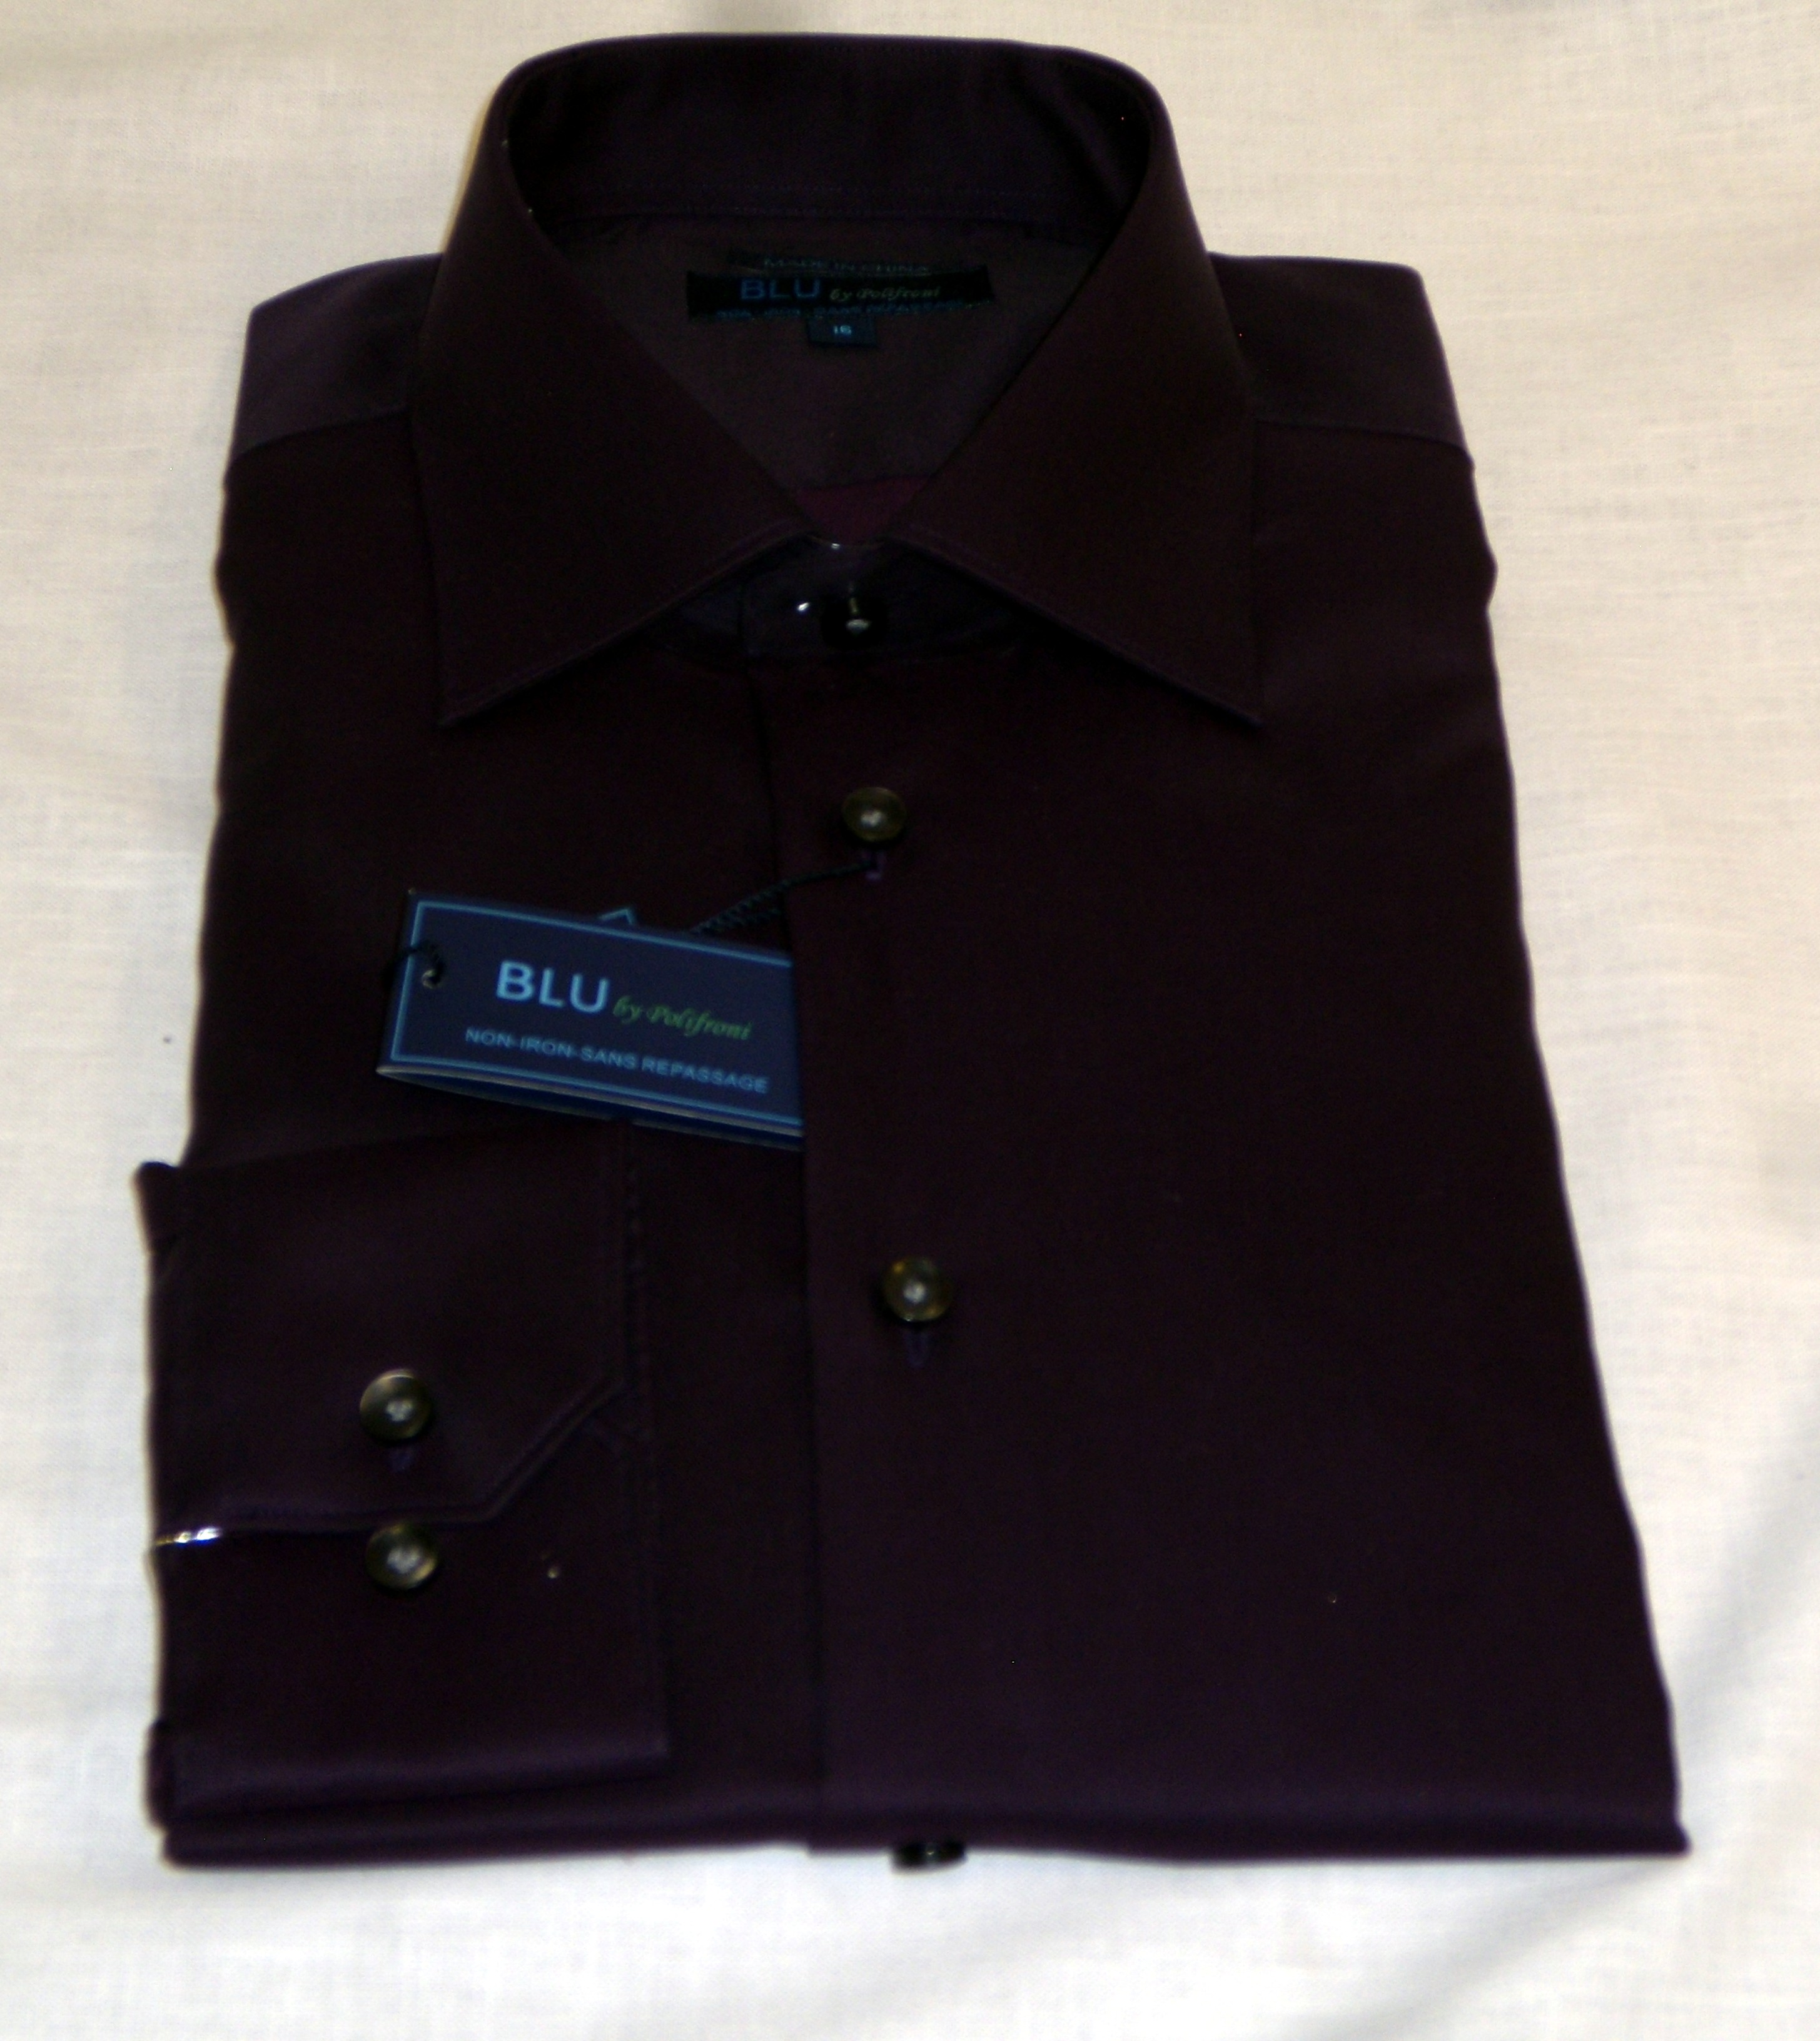 Blu by Polifroni Plum Dress Shirt